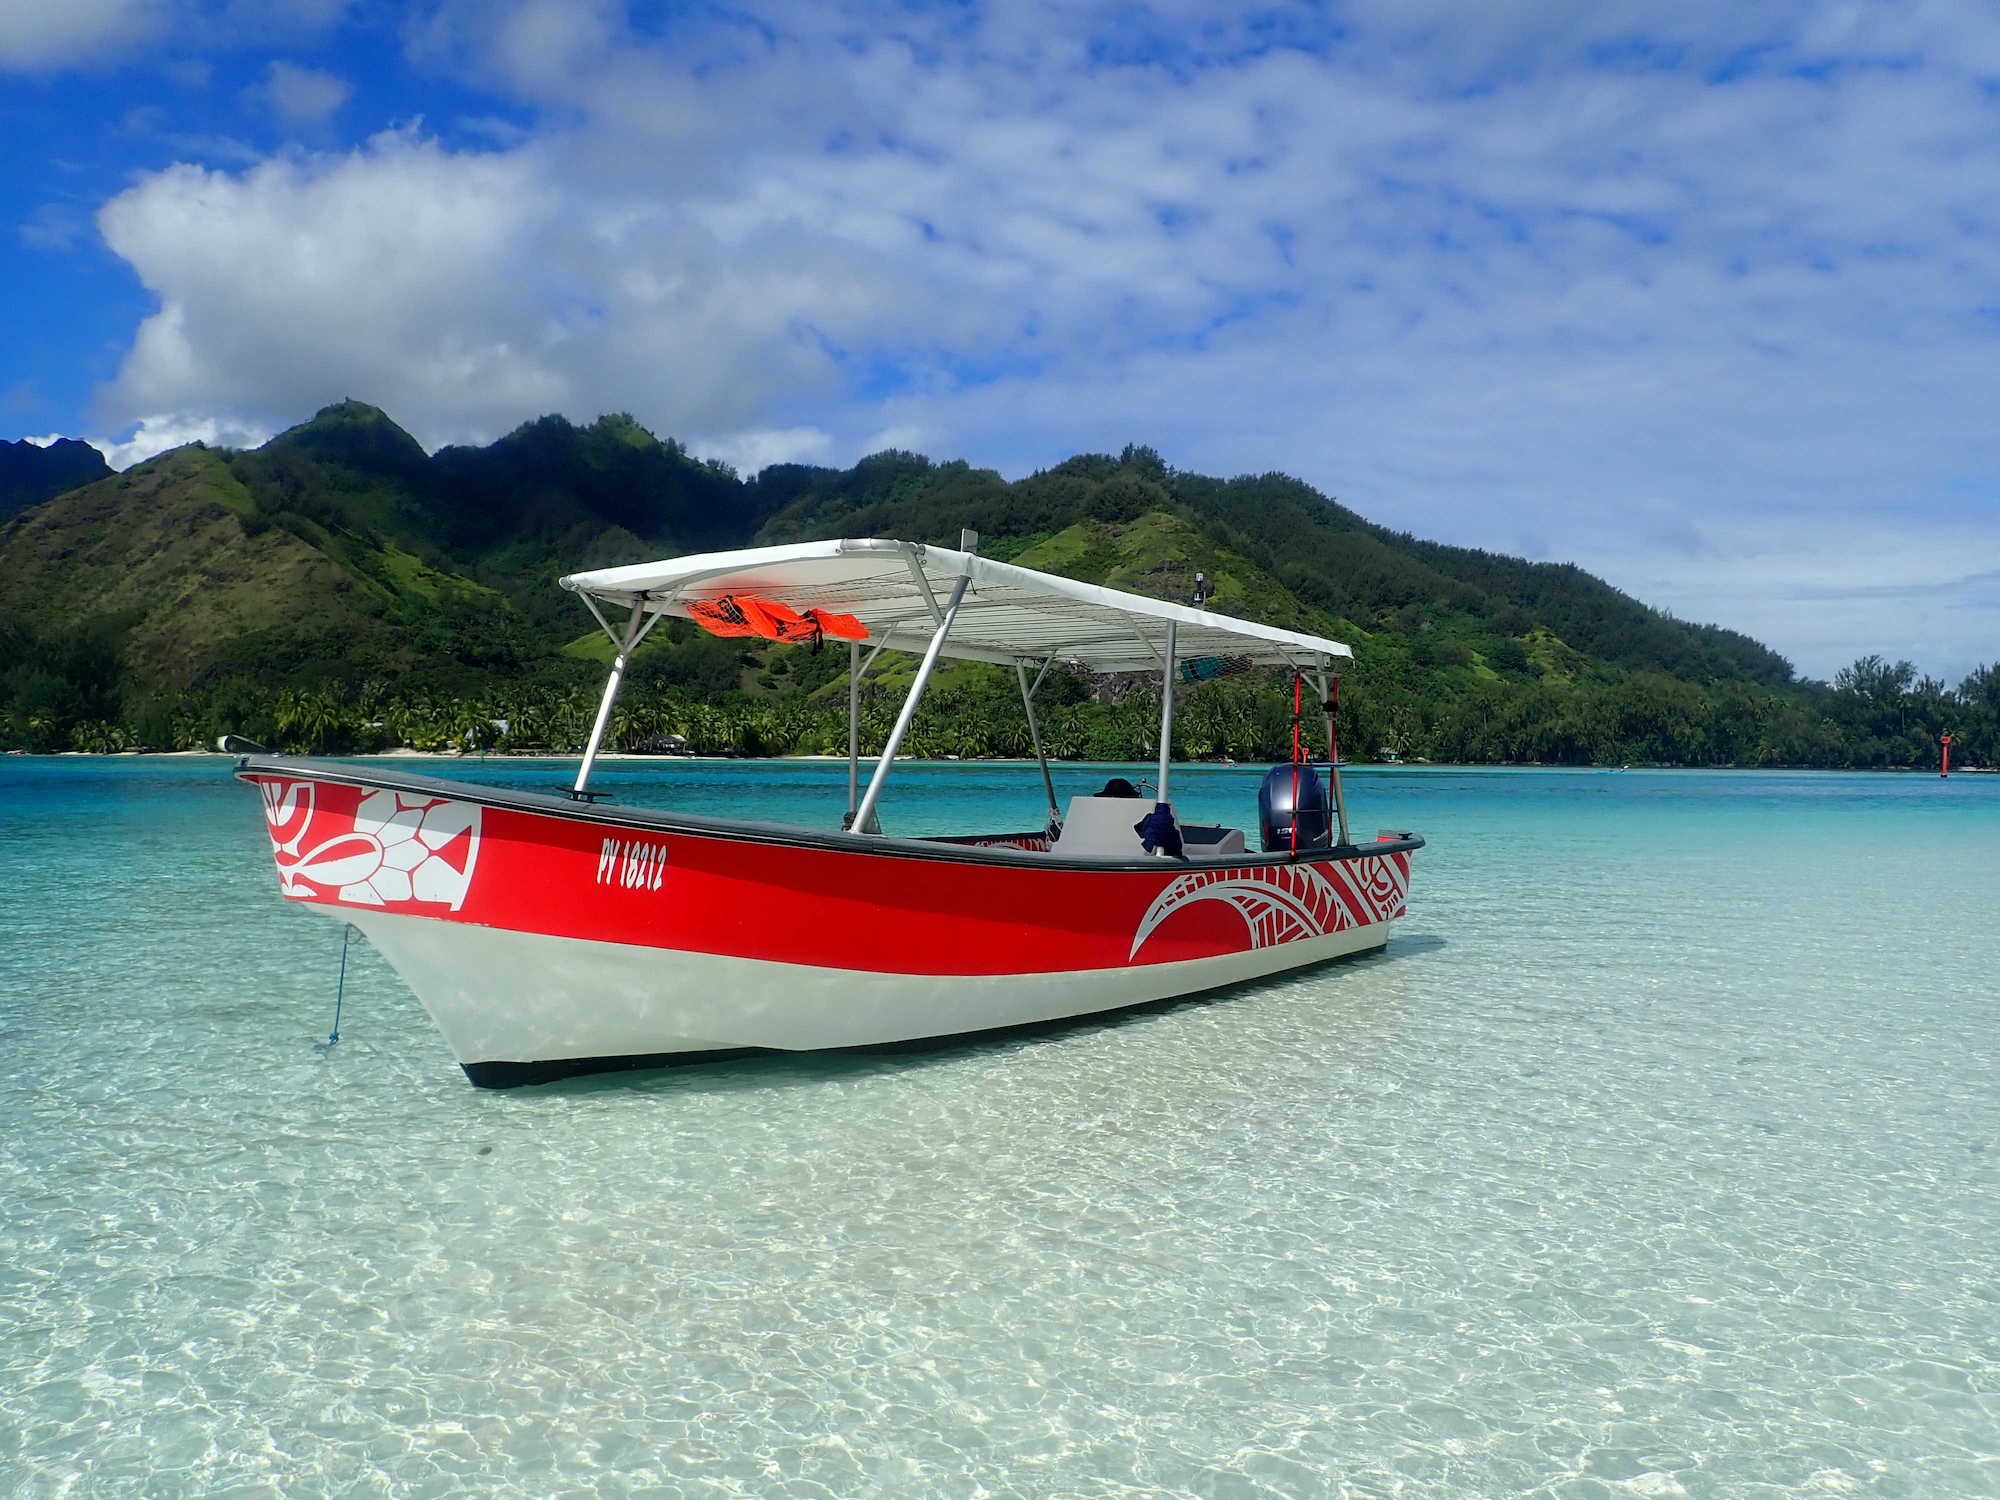 https://tahititourisme.be/wp-content/uploads/2020/09/Boat-Hinaloa.jpg